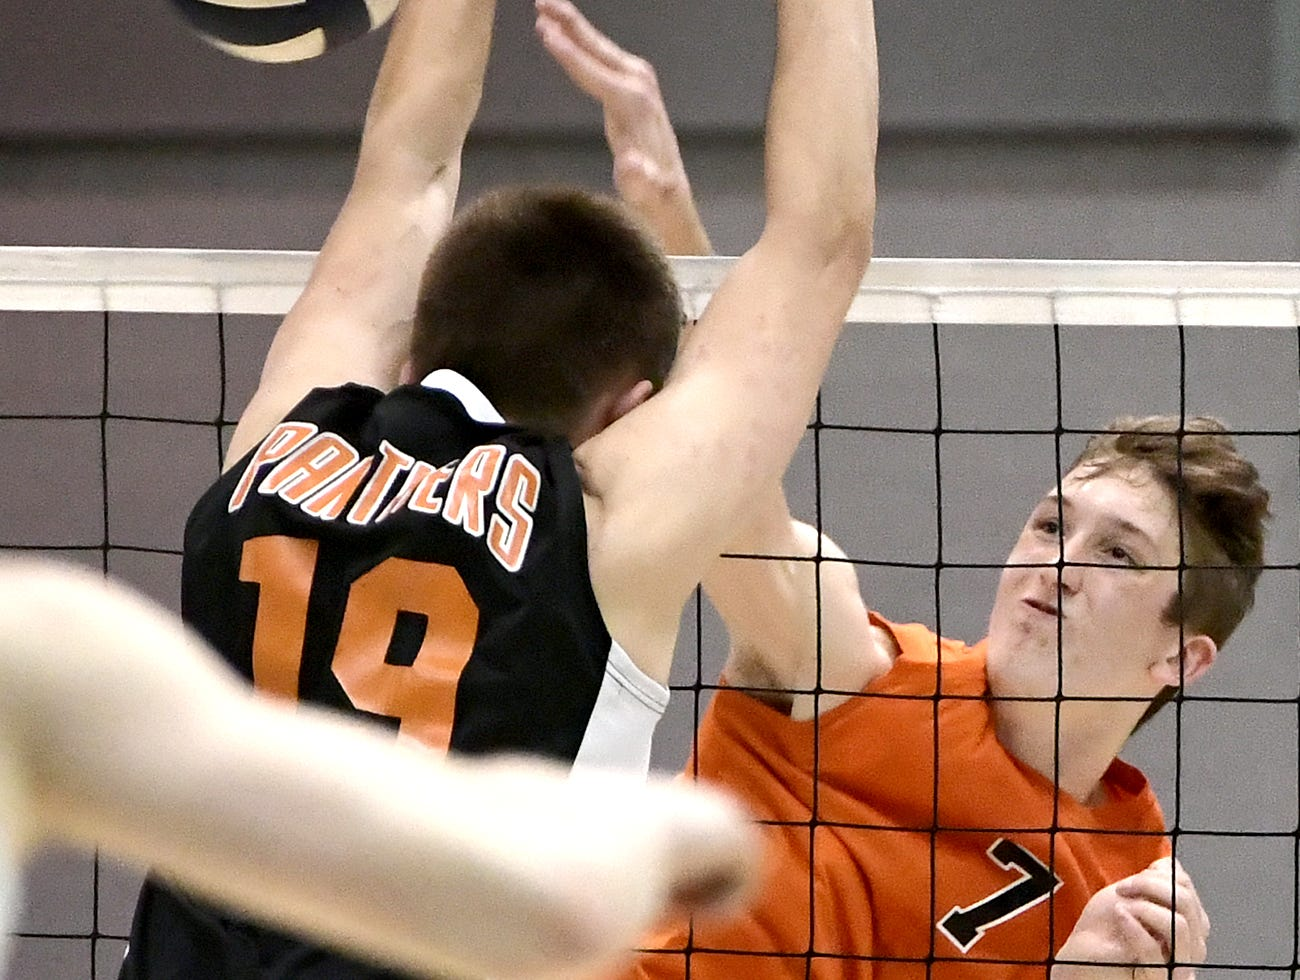 Northeastern's Alex Finch returns with Central York's Cheston Jacobs defending in the York-Adams boys' volleyball championship match at Dallastown Tuesday, May 14, 2019. Northeastern won in five games. Bill Kalina photo